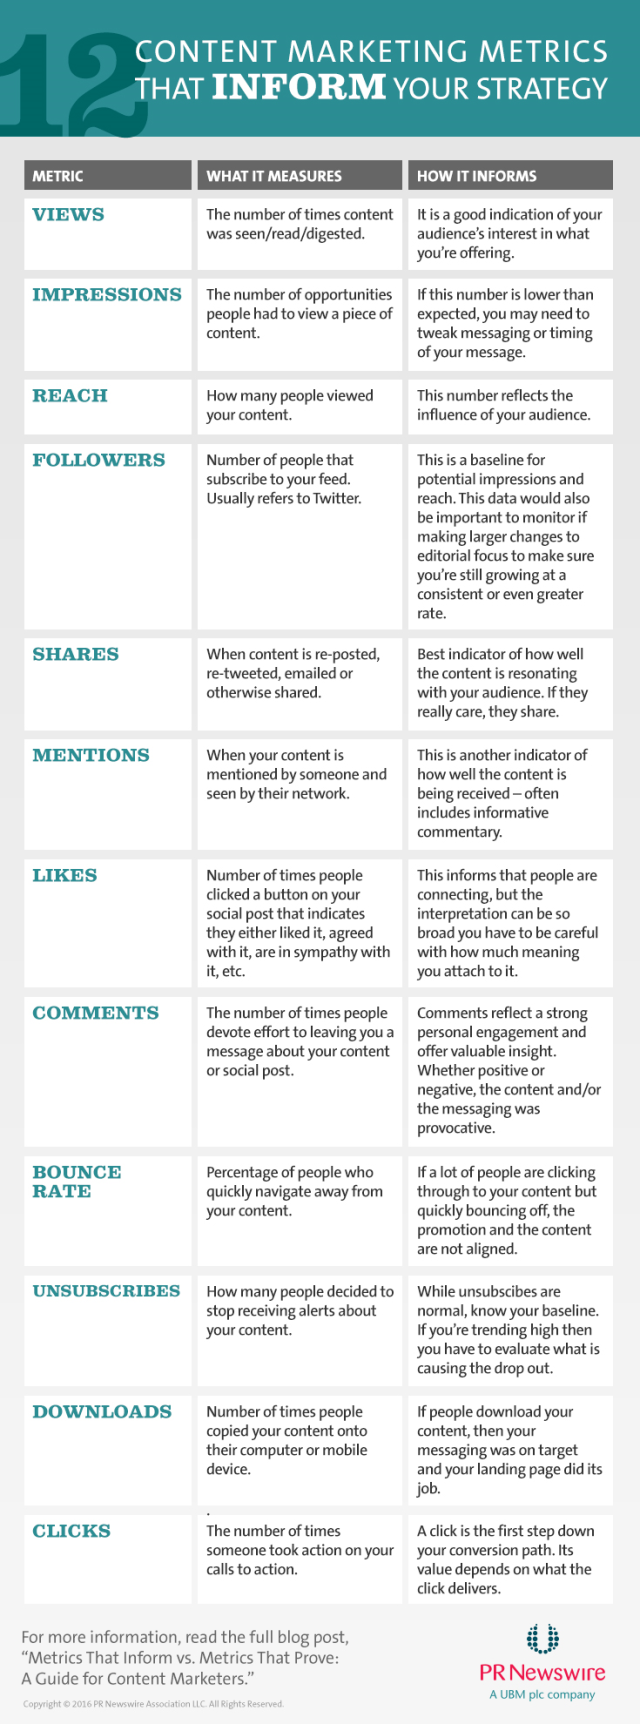 Content Marketing Metrics That INFORM Strategy